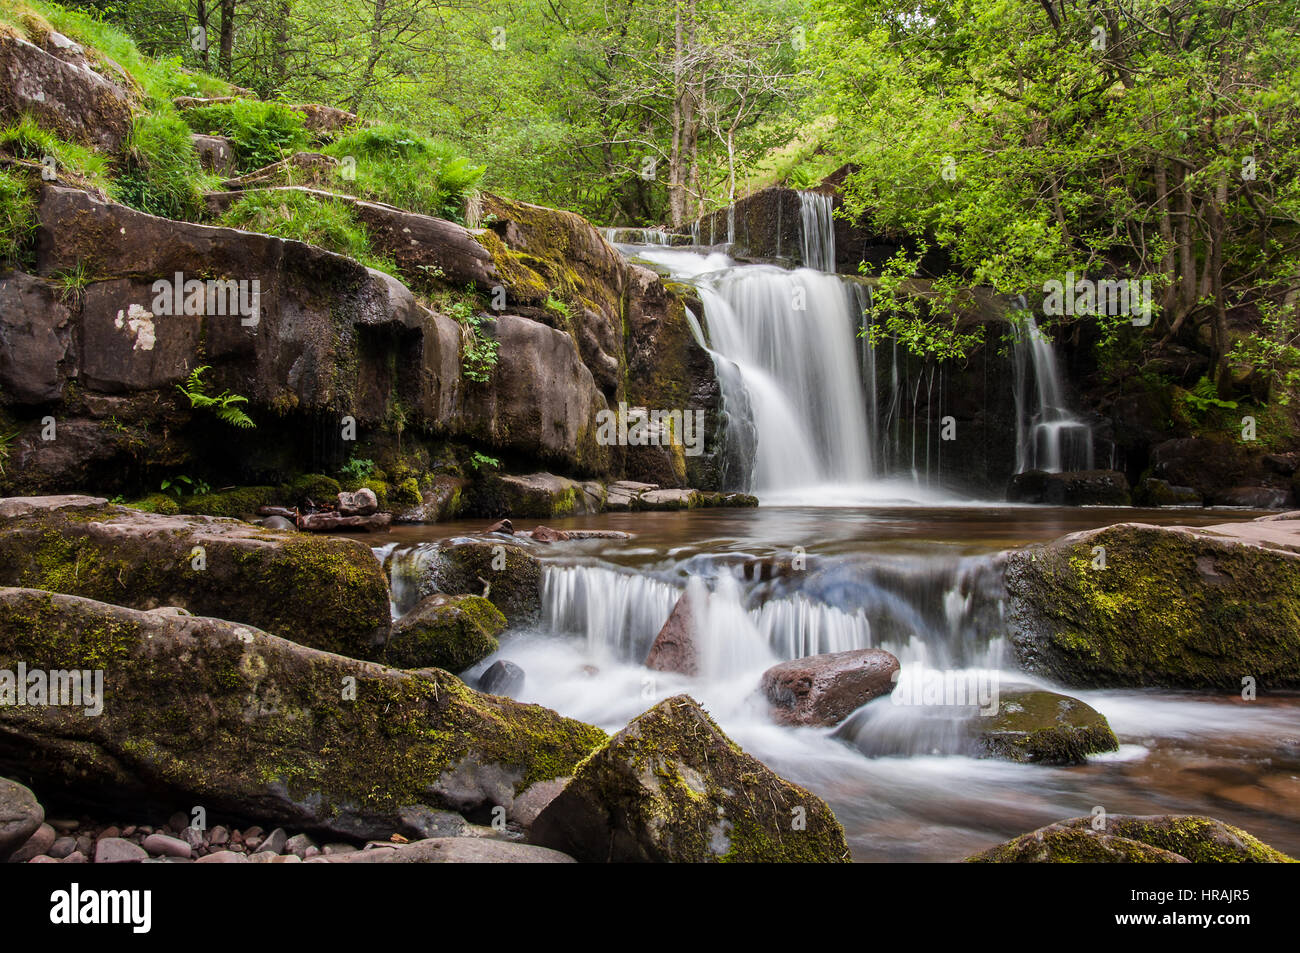 Blaen y Glyn Waterfalls above Talybont Reservoir in the Brecon Beacons National Park, Wales, UK - Stock Image